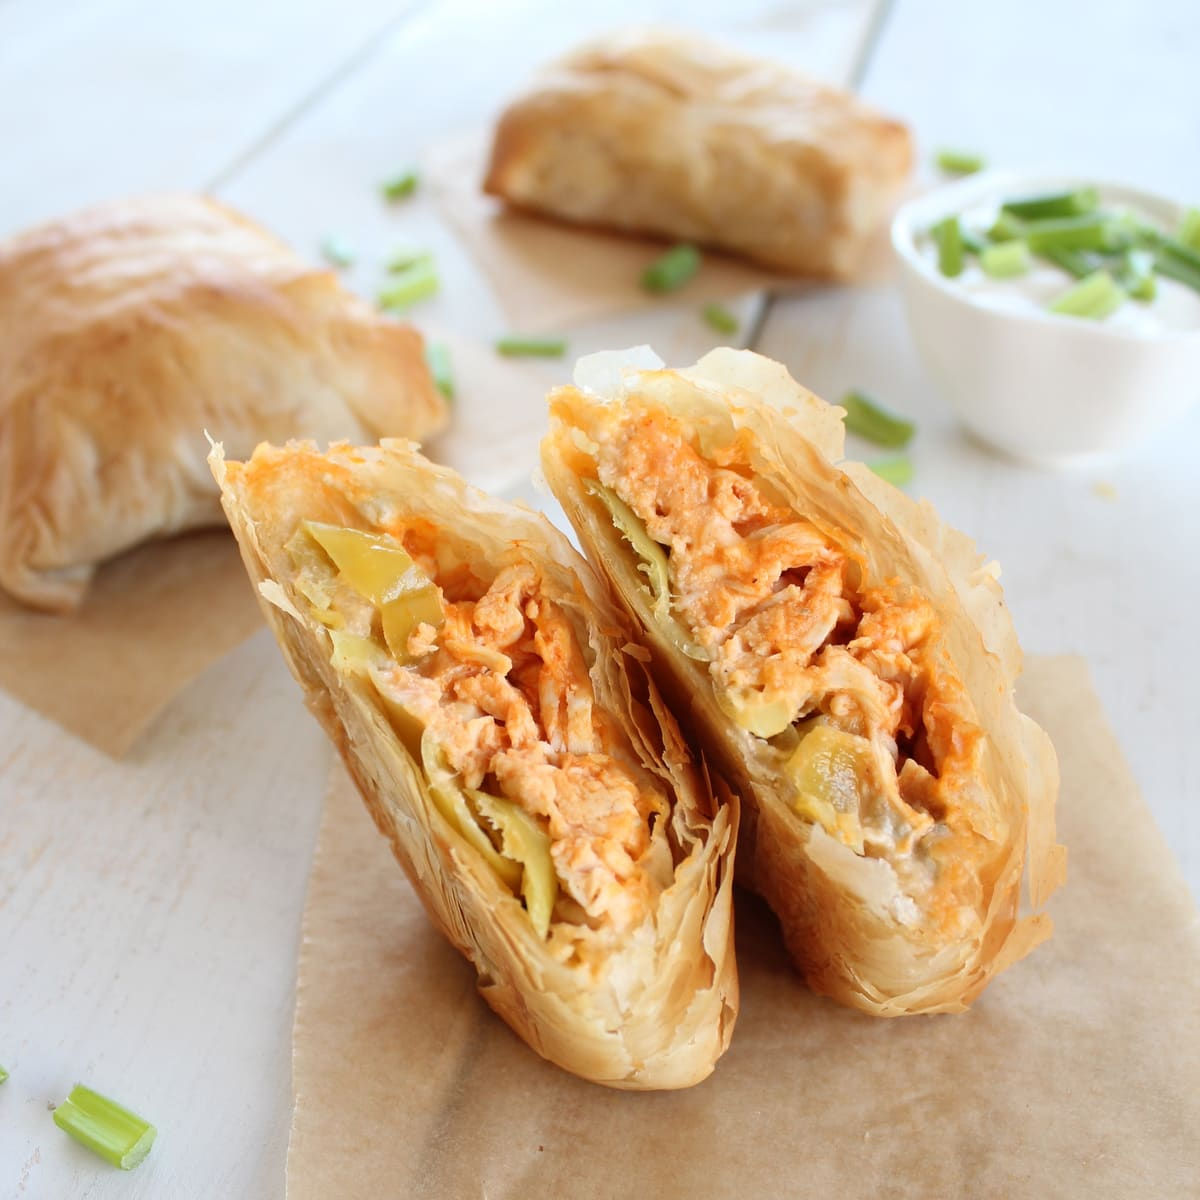 Buffalo chicken phyllo rolls recipe for Phyllo dough recipes appetizers indian